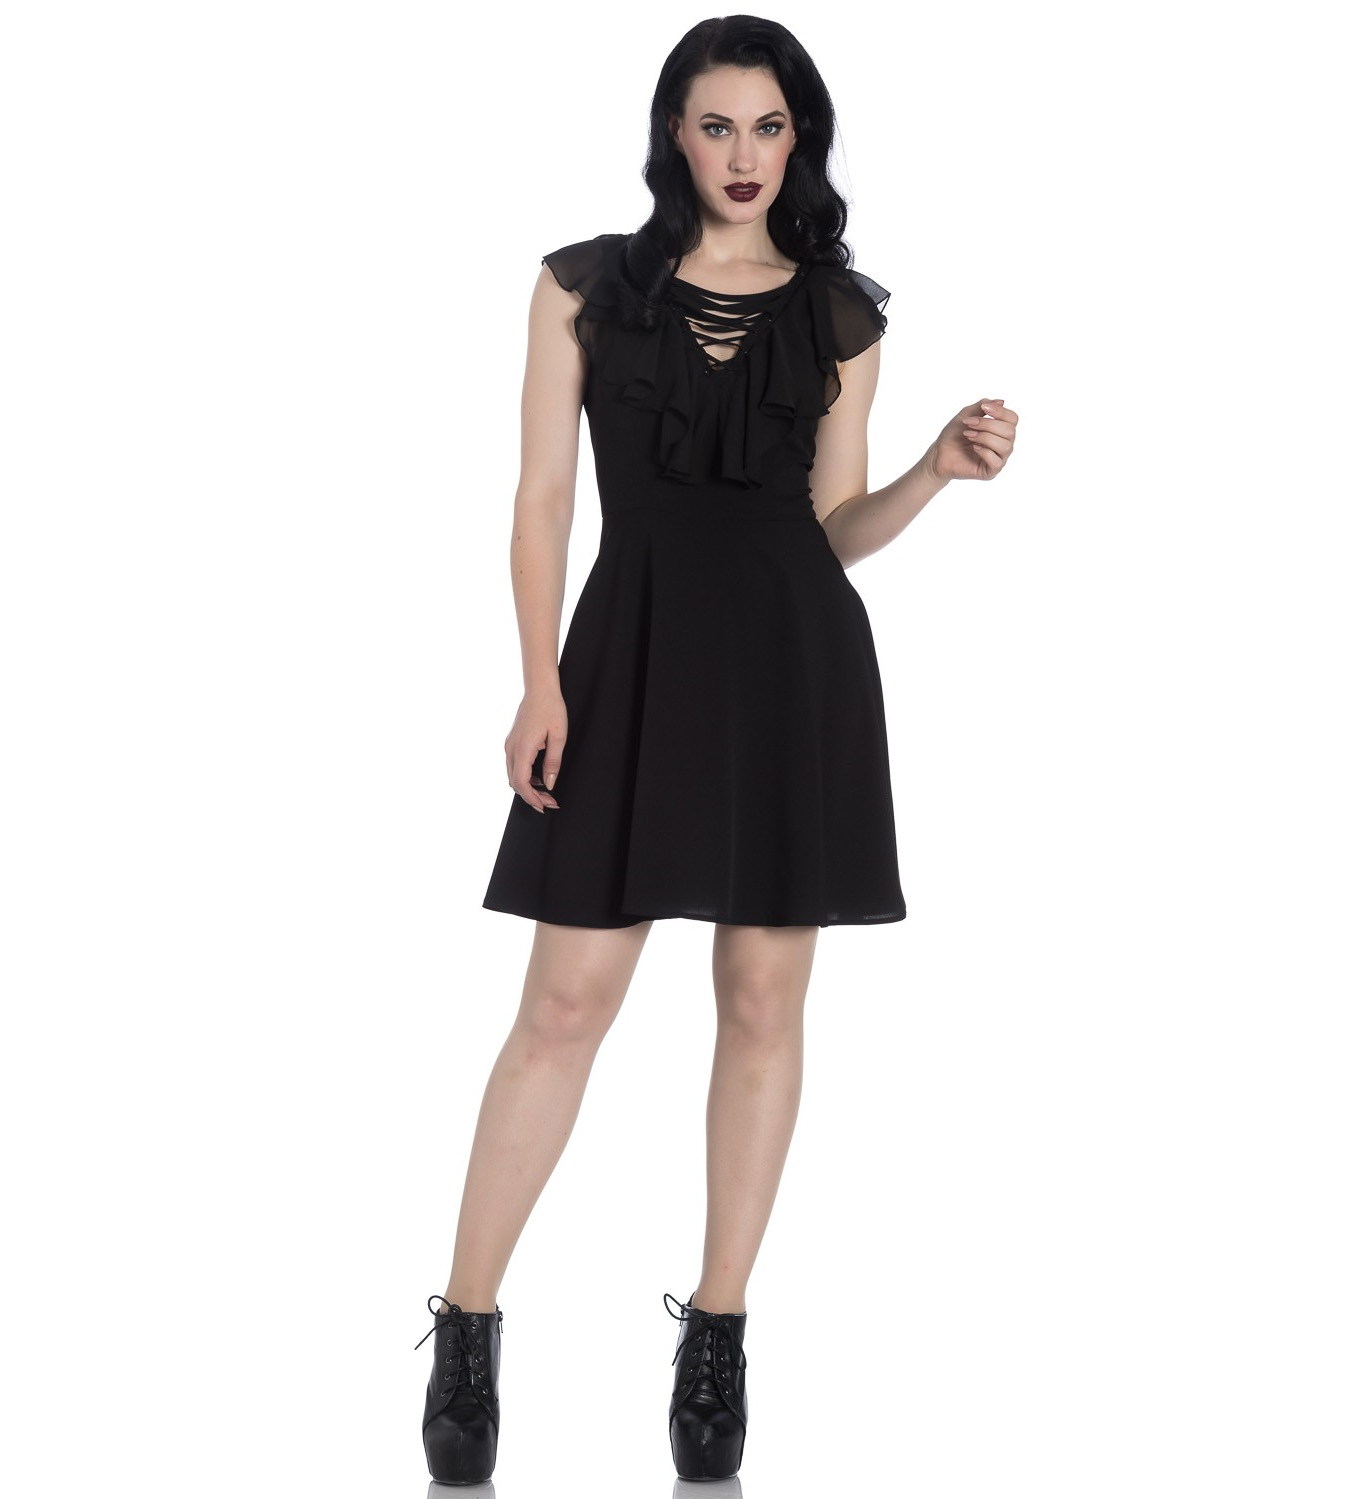 Hell-Bunny-Floaty-Lace-Up-Goth-Witch-Punk-Mini-Dress-ONYX-Black-All-Sizes thumbnail 9